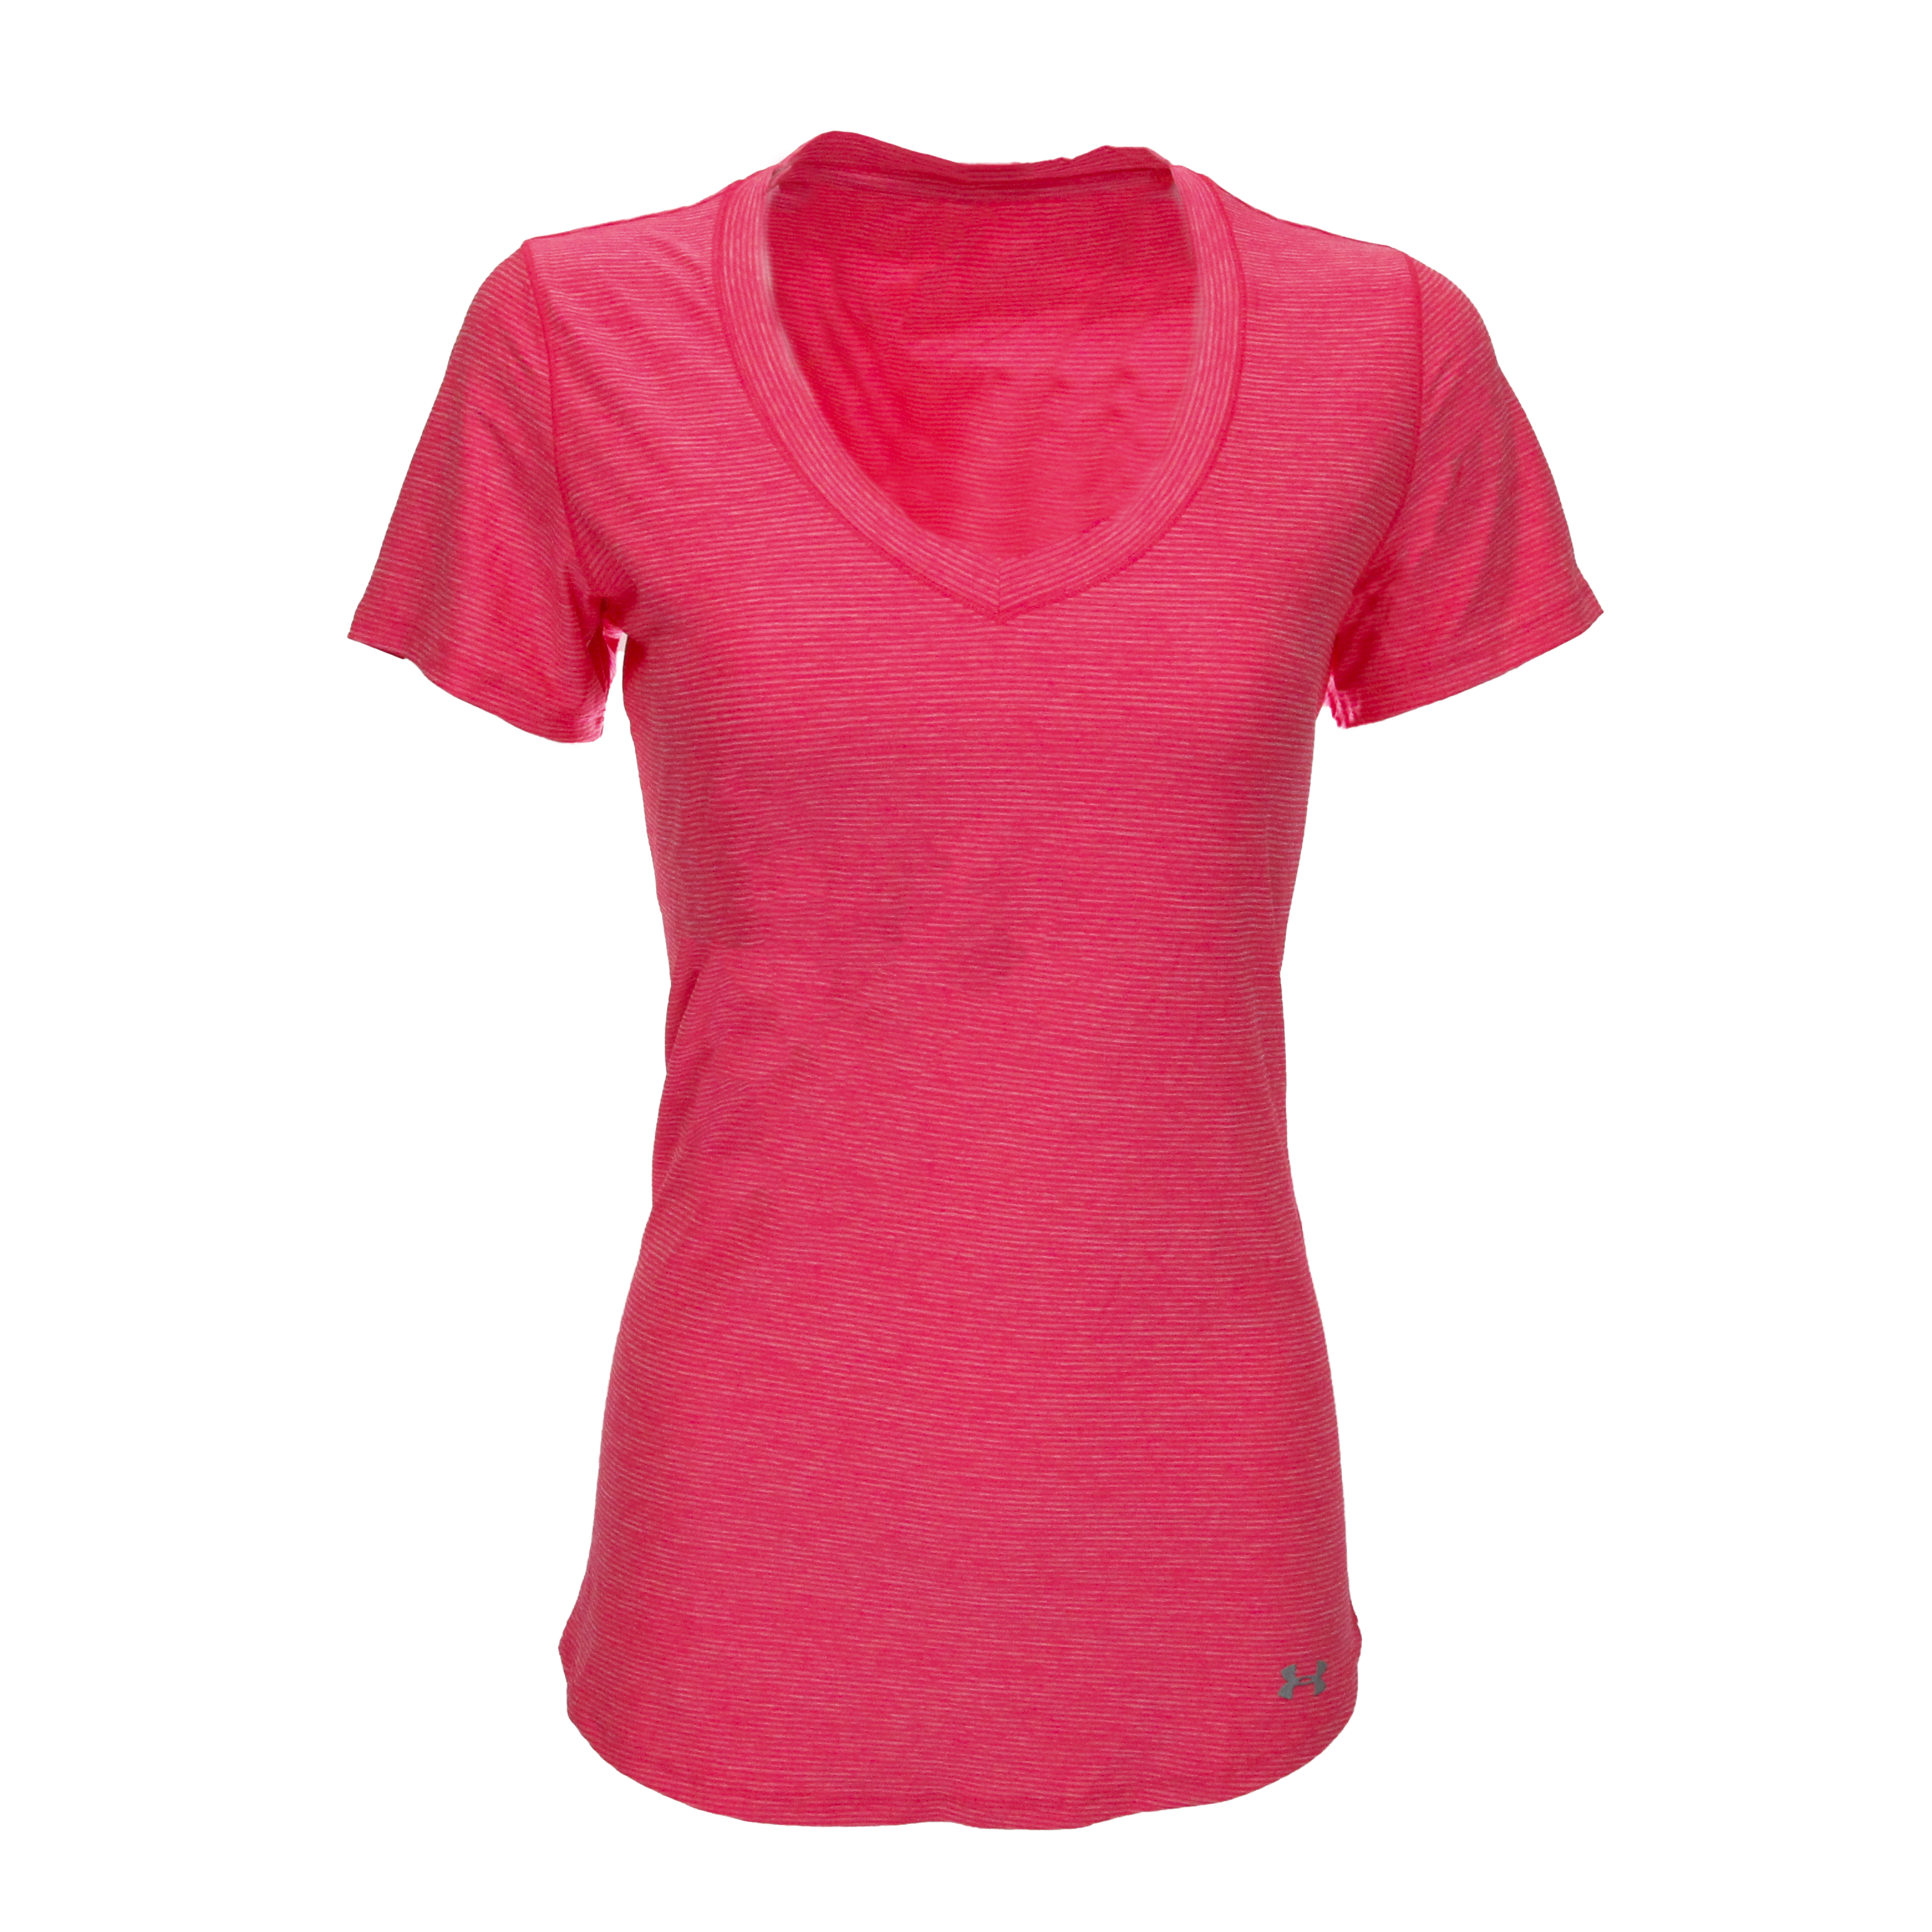 Details about Under Armour Women s UA Perfect Pace V-Neck T-Shirt Neon Pink Steel  S b9bbaeb85d